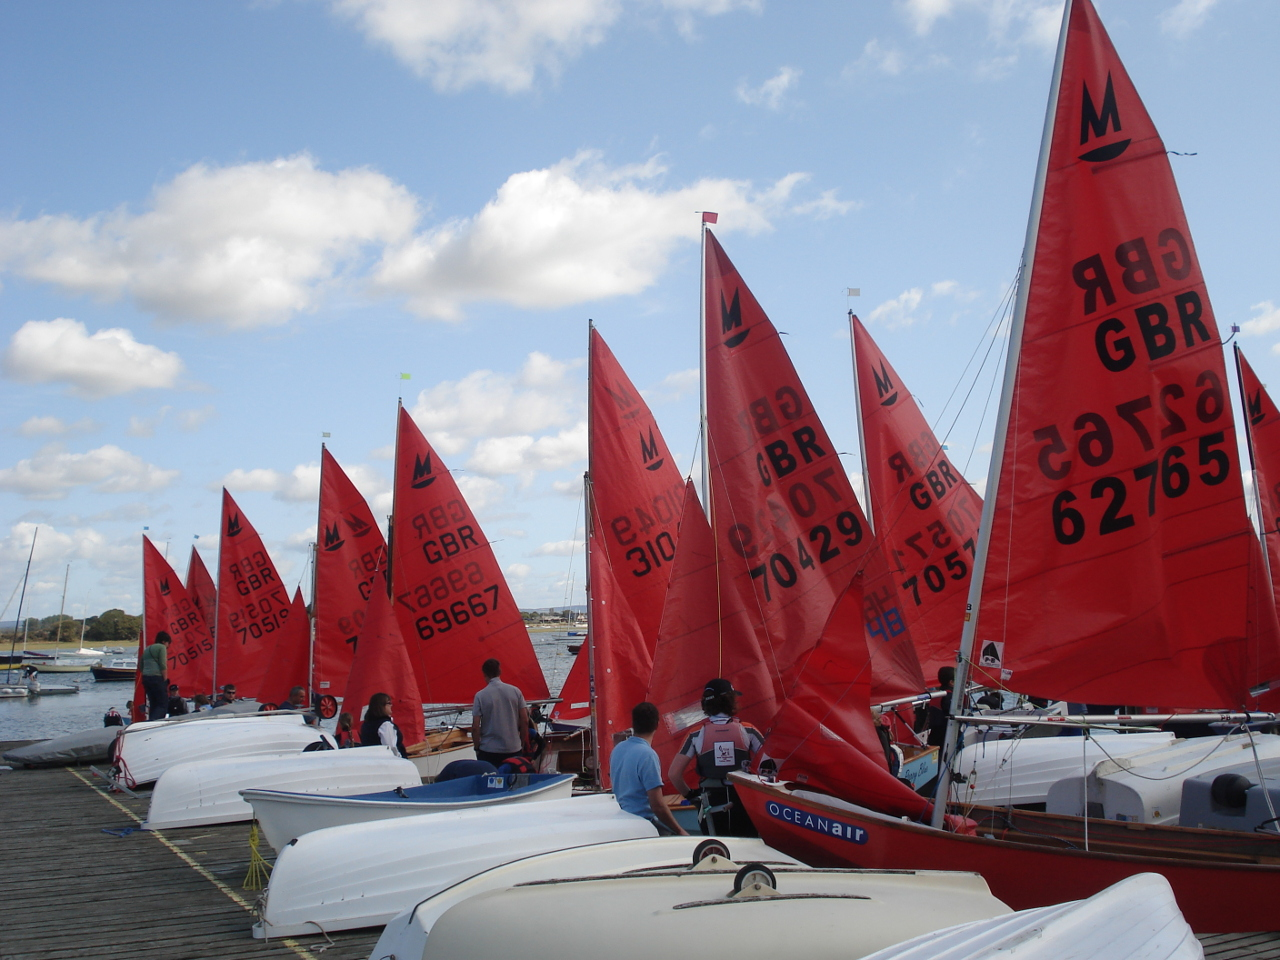 A queue of Mirrors lined up with sails hoisted on the Itchenor SC pontoon waiting to launch